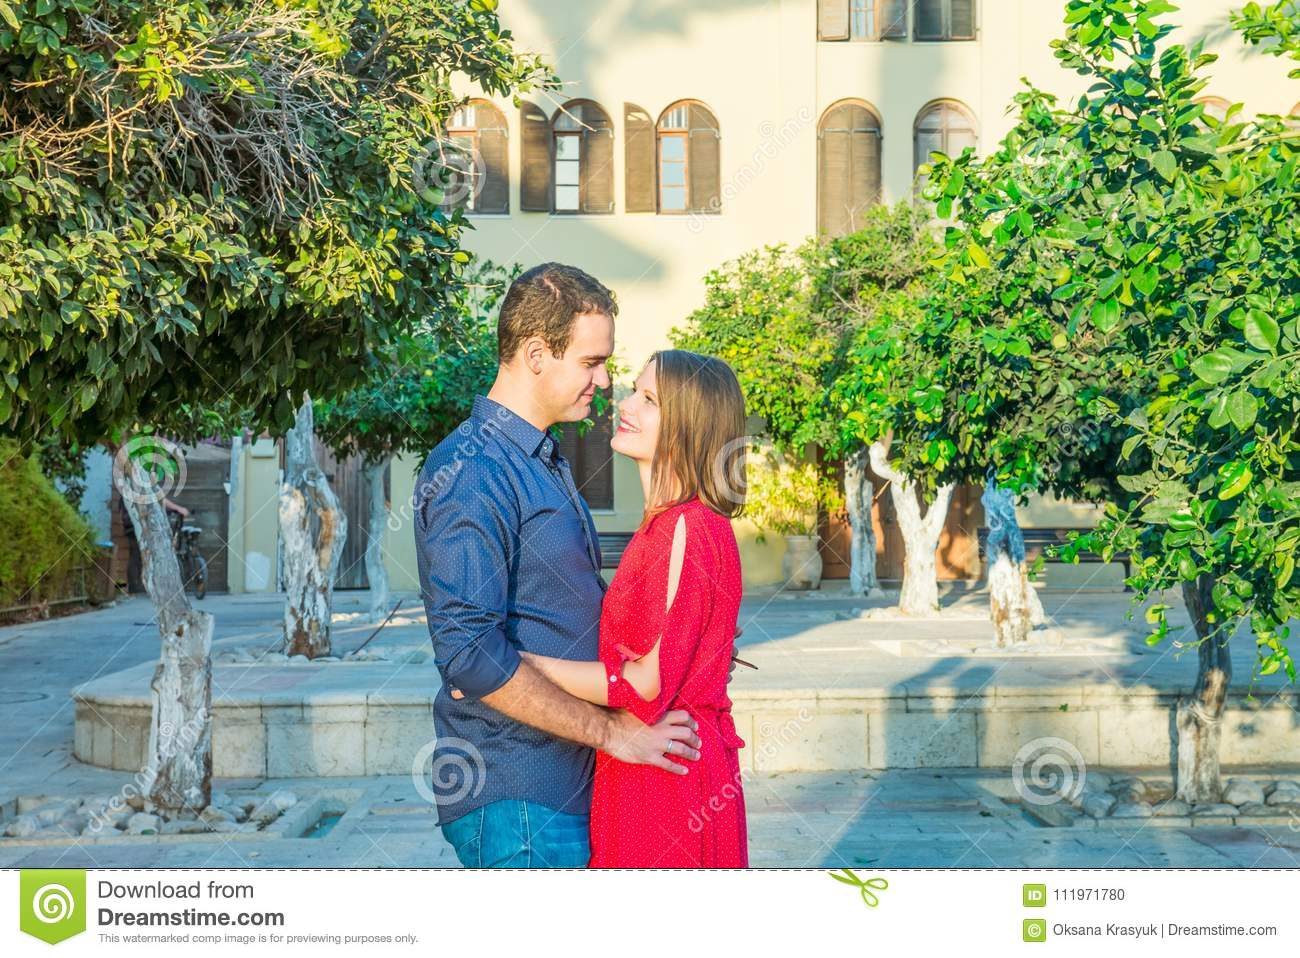 Romantic Young Couple In Bright Red And Blue Clothes Embracing On Street Romance The Mediterranean City